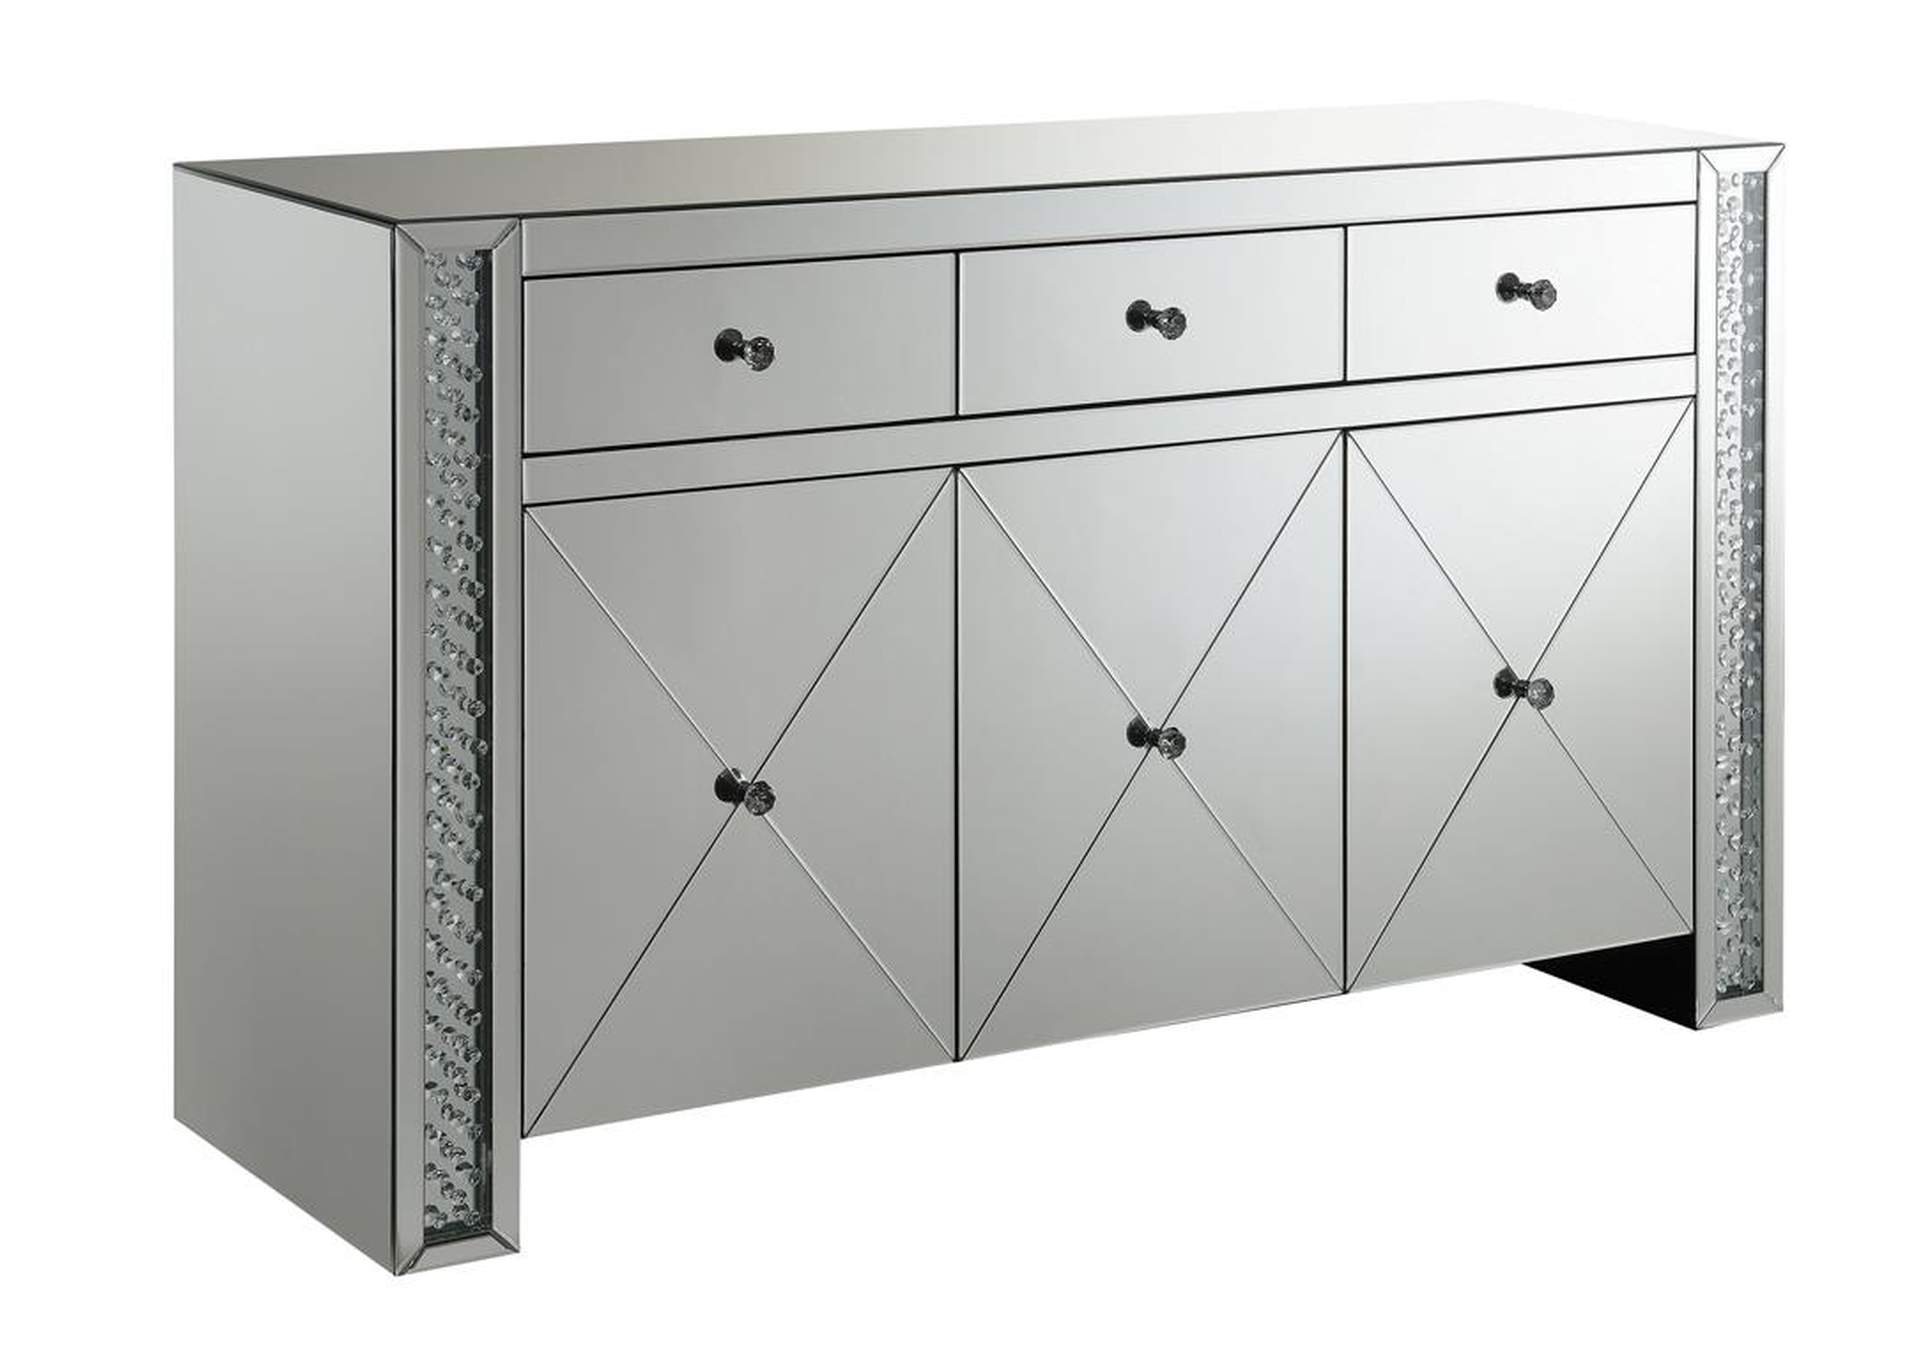 Black / Silver Contemporary Silver and Black Cabinet,Coaster Furniture